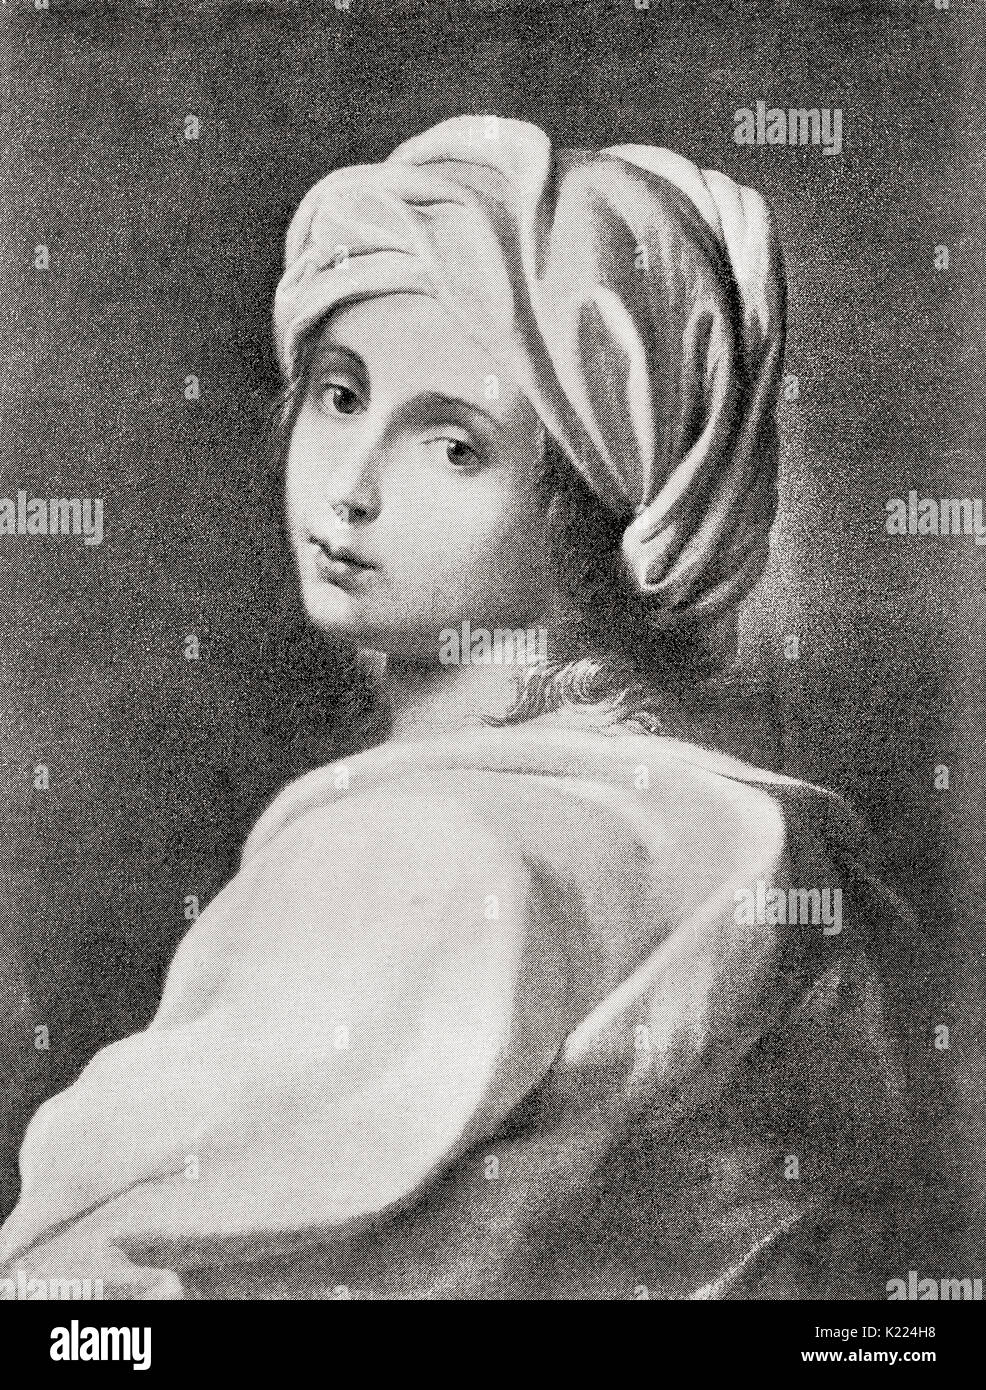 Beatrice Cenci, 1577 –  1599.  Young Roman noblewoman who murdered her father, Count Francesco Cenci. She was condemned and beheaded for the crime in 1599.  From International Library of Famous Literature, published c.1900 - Stock Image